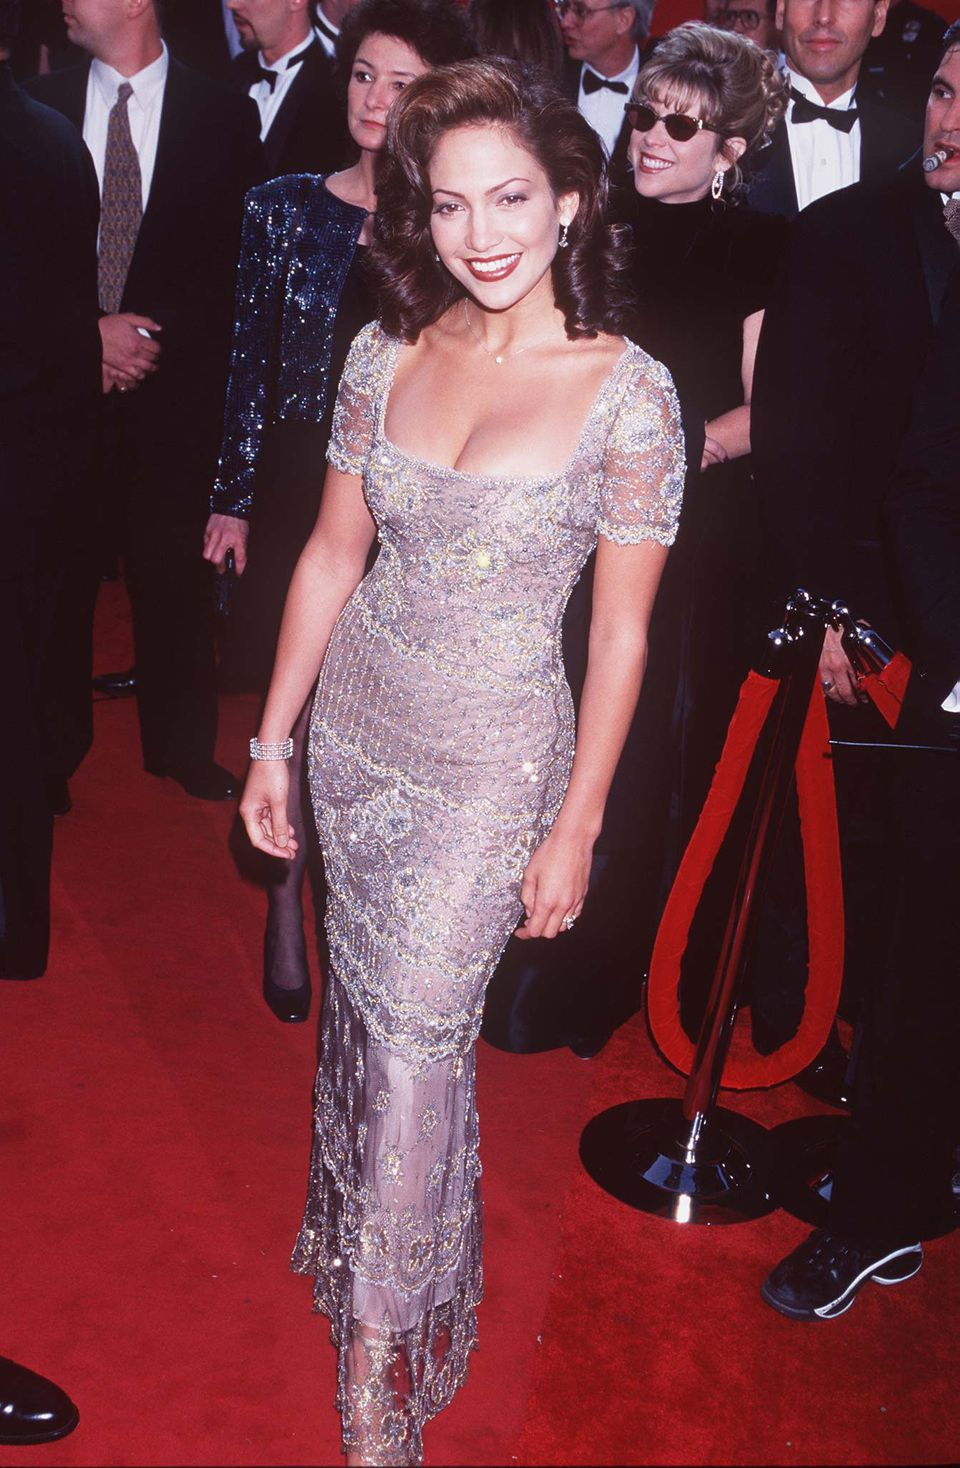 Lopez wears aBadgley Mischka dress for her first Oscars ceremony in 1997.